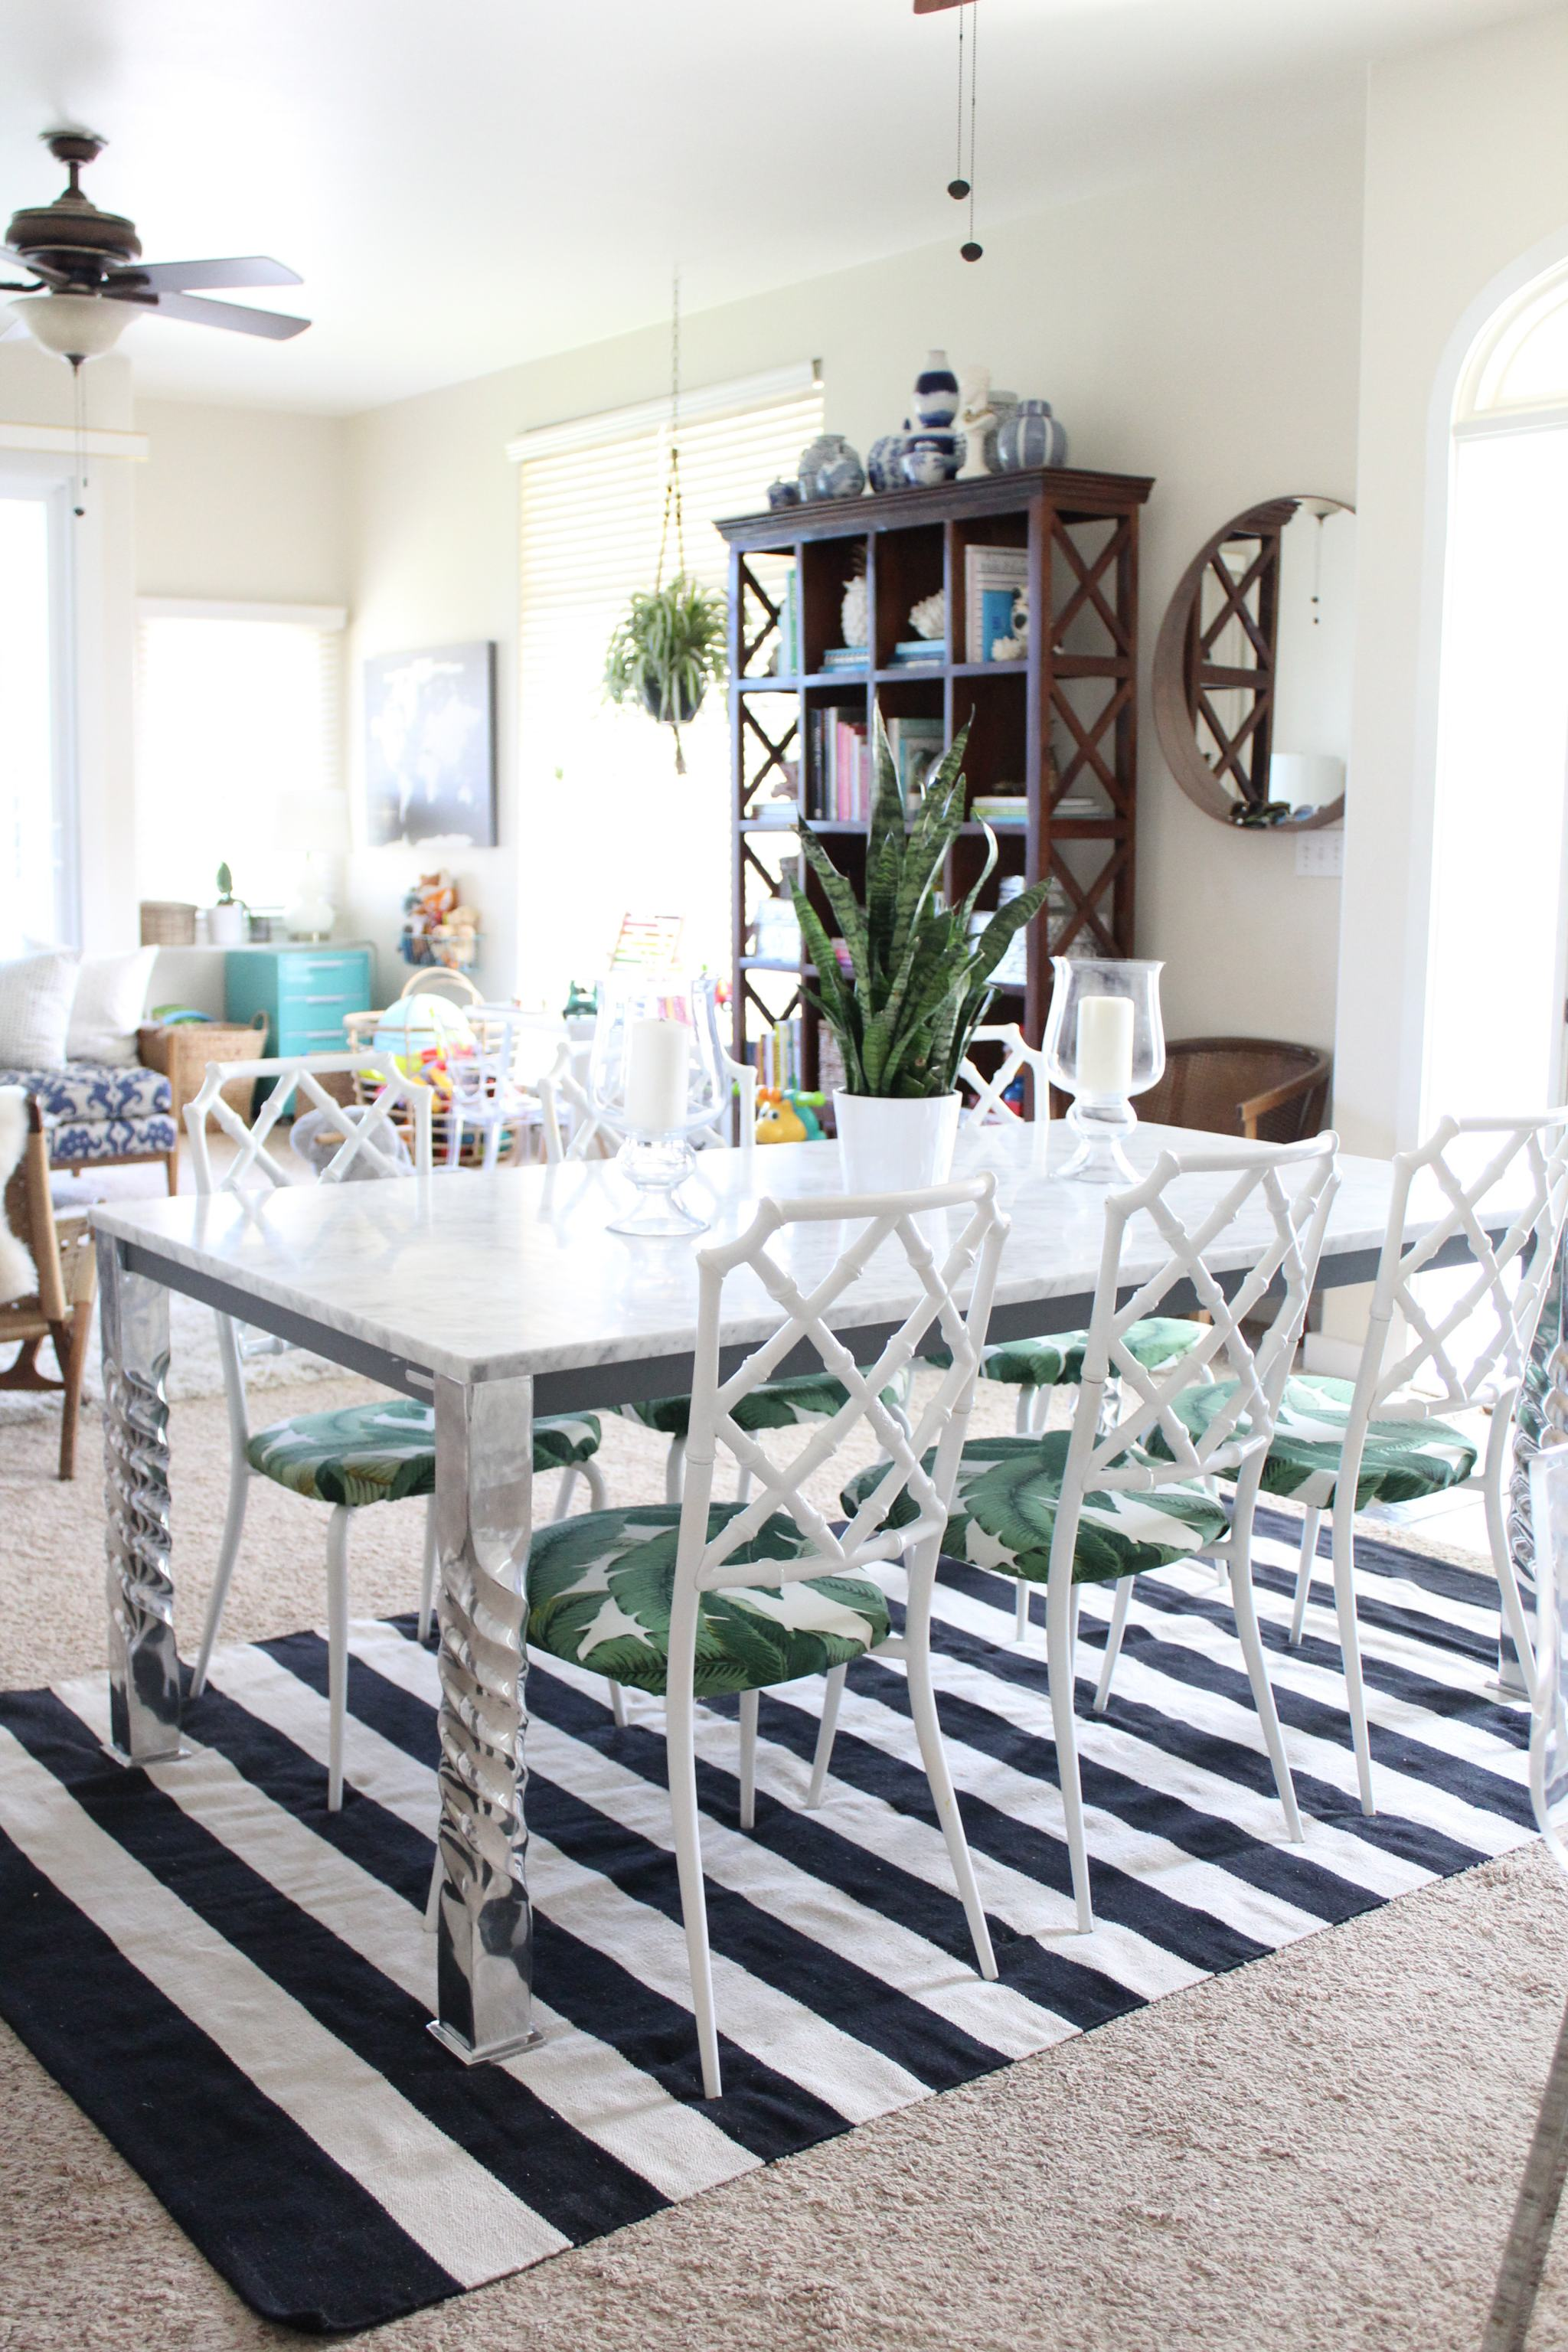 marble dining table - palm leaf fabric - faux bamboo dining chairs - striped rug